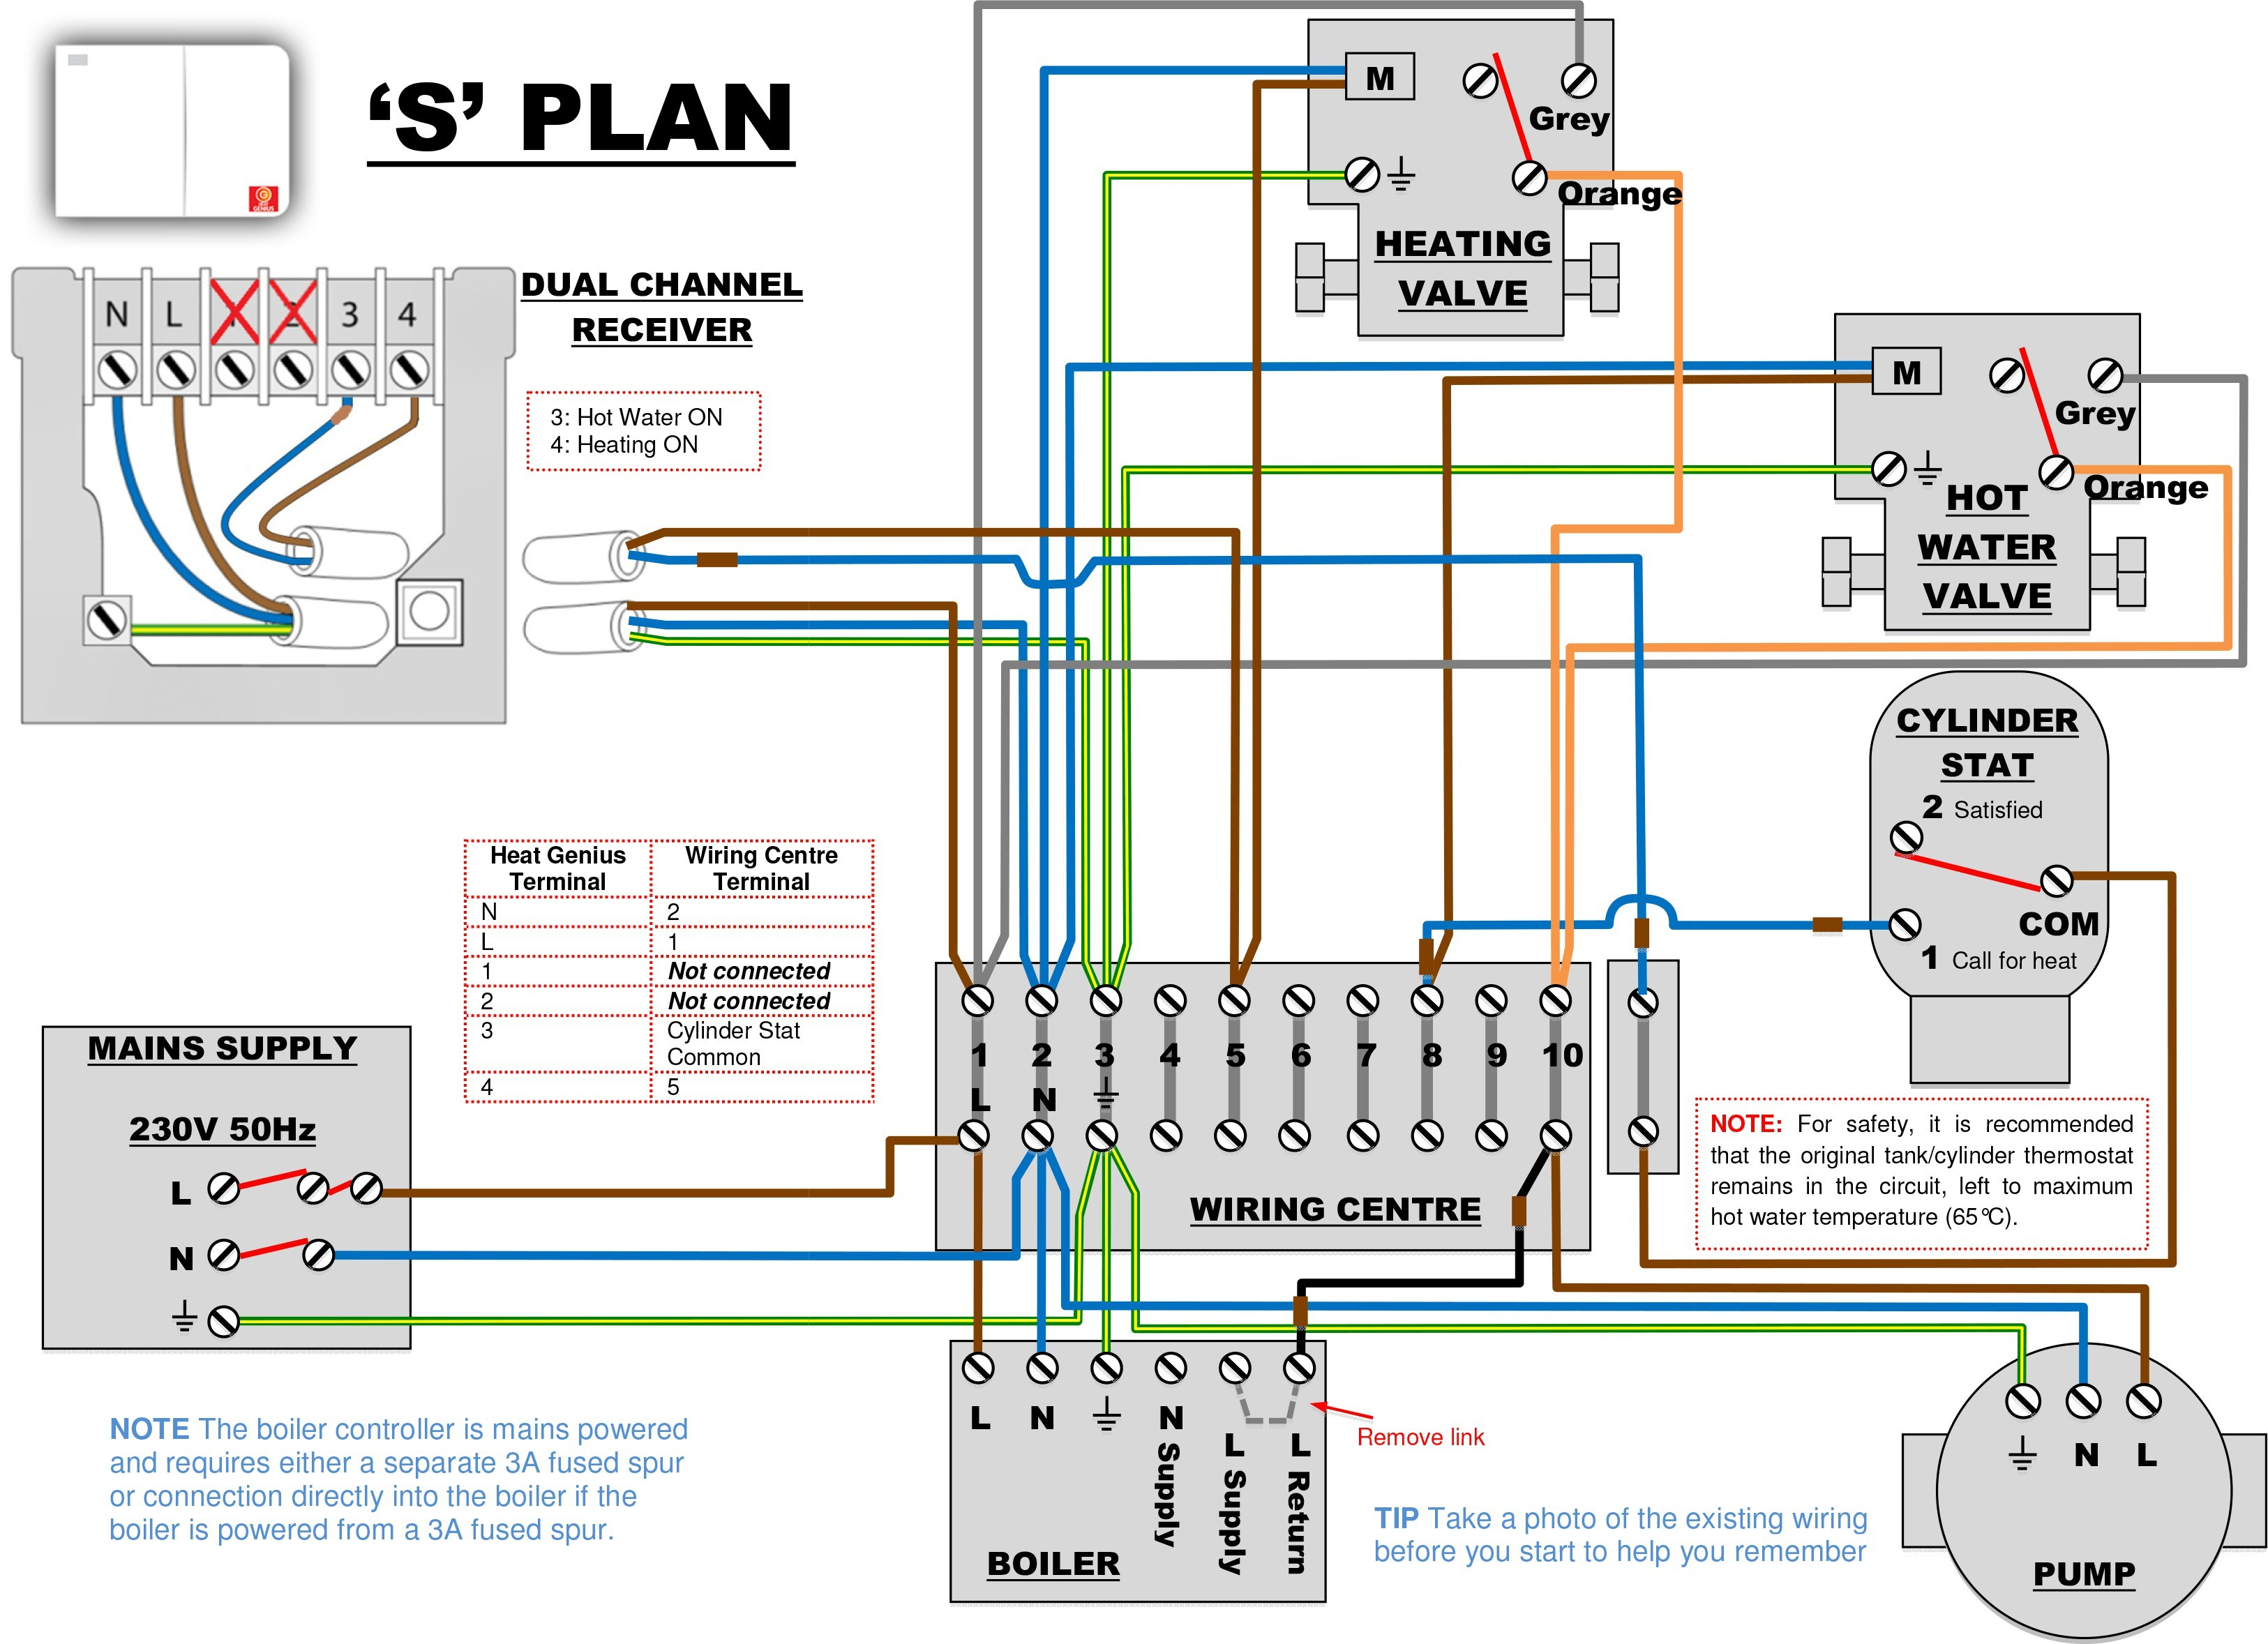 D Nest Thermostat Aprilaire Thermostat Wiring Diagram Nest Proposed - Y Plan Wiring Diagram For Nest